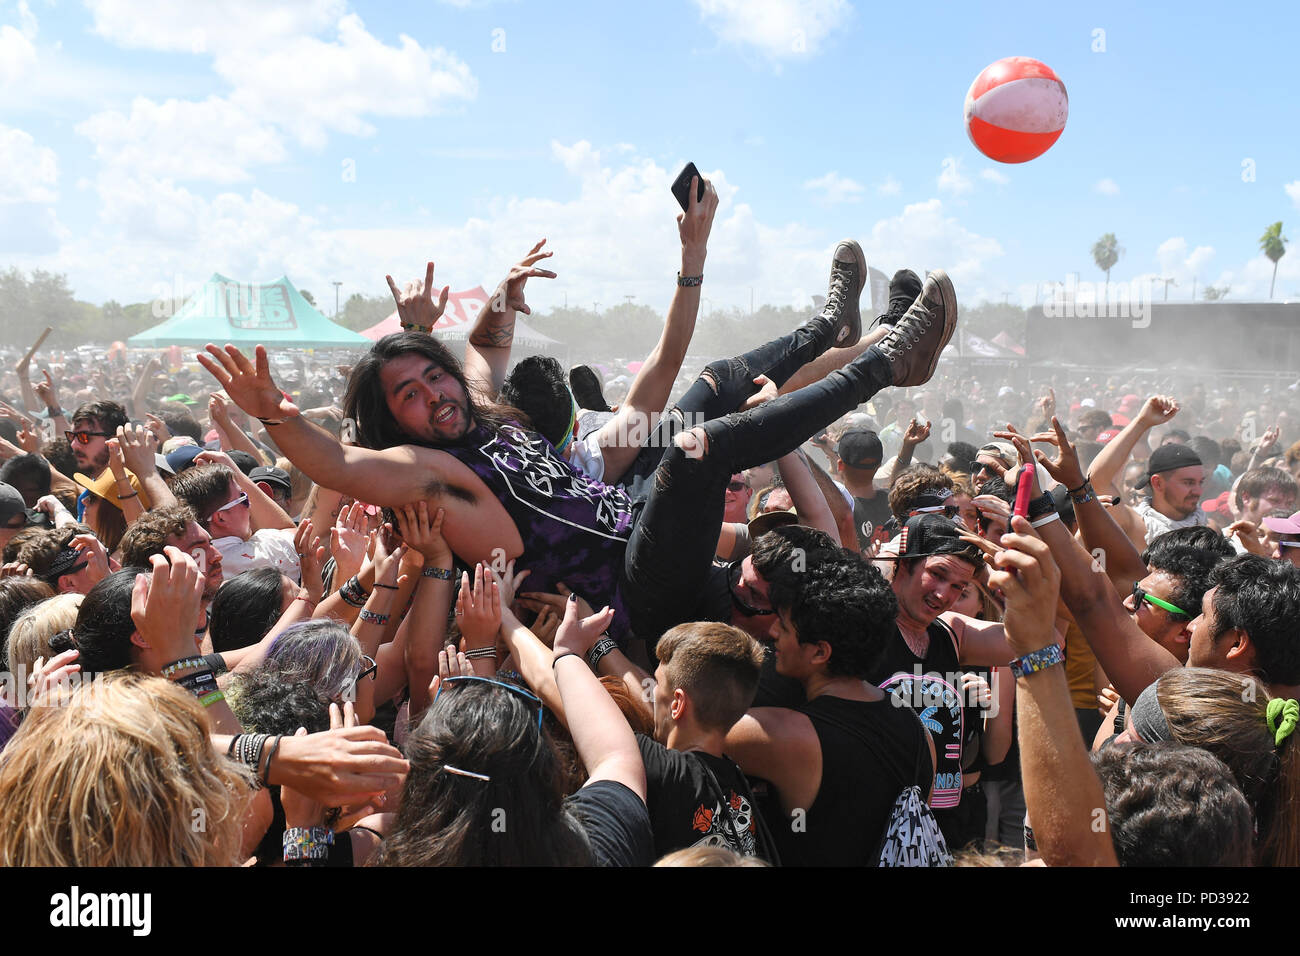 West Palm Beach, FL, USA. 05th Aug, 2018. Atmosphere during the final full cross country Vans Warped Tour at The Coral Sky Amphitheatre on August 5, 2018 in West Palm Beach Florida. Credit: Mpi04/Media Punch/Alamy Live News - Stock Image